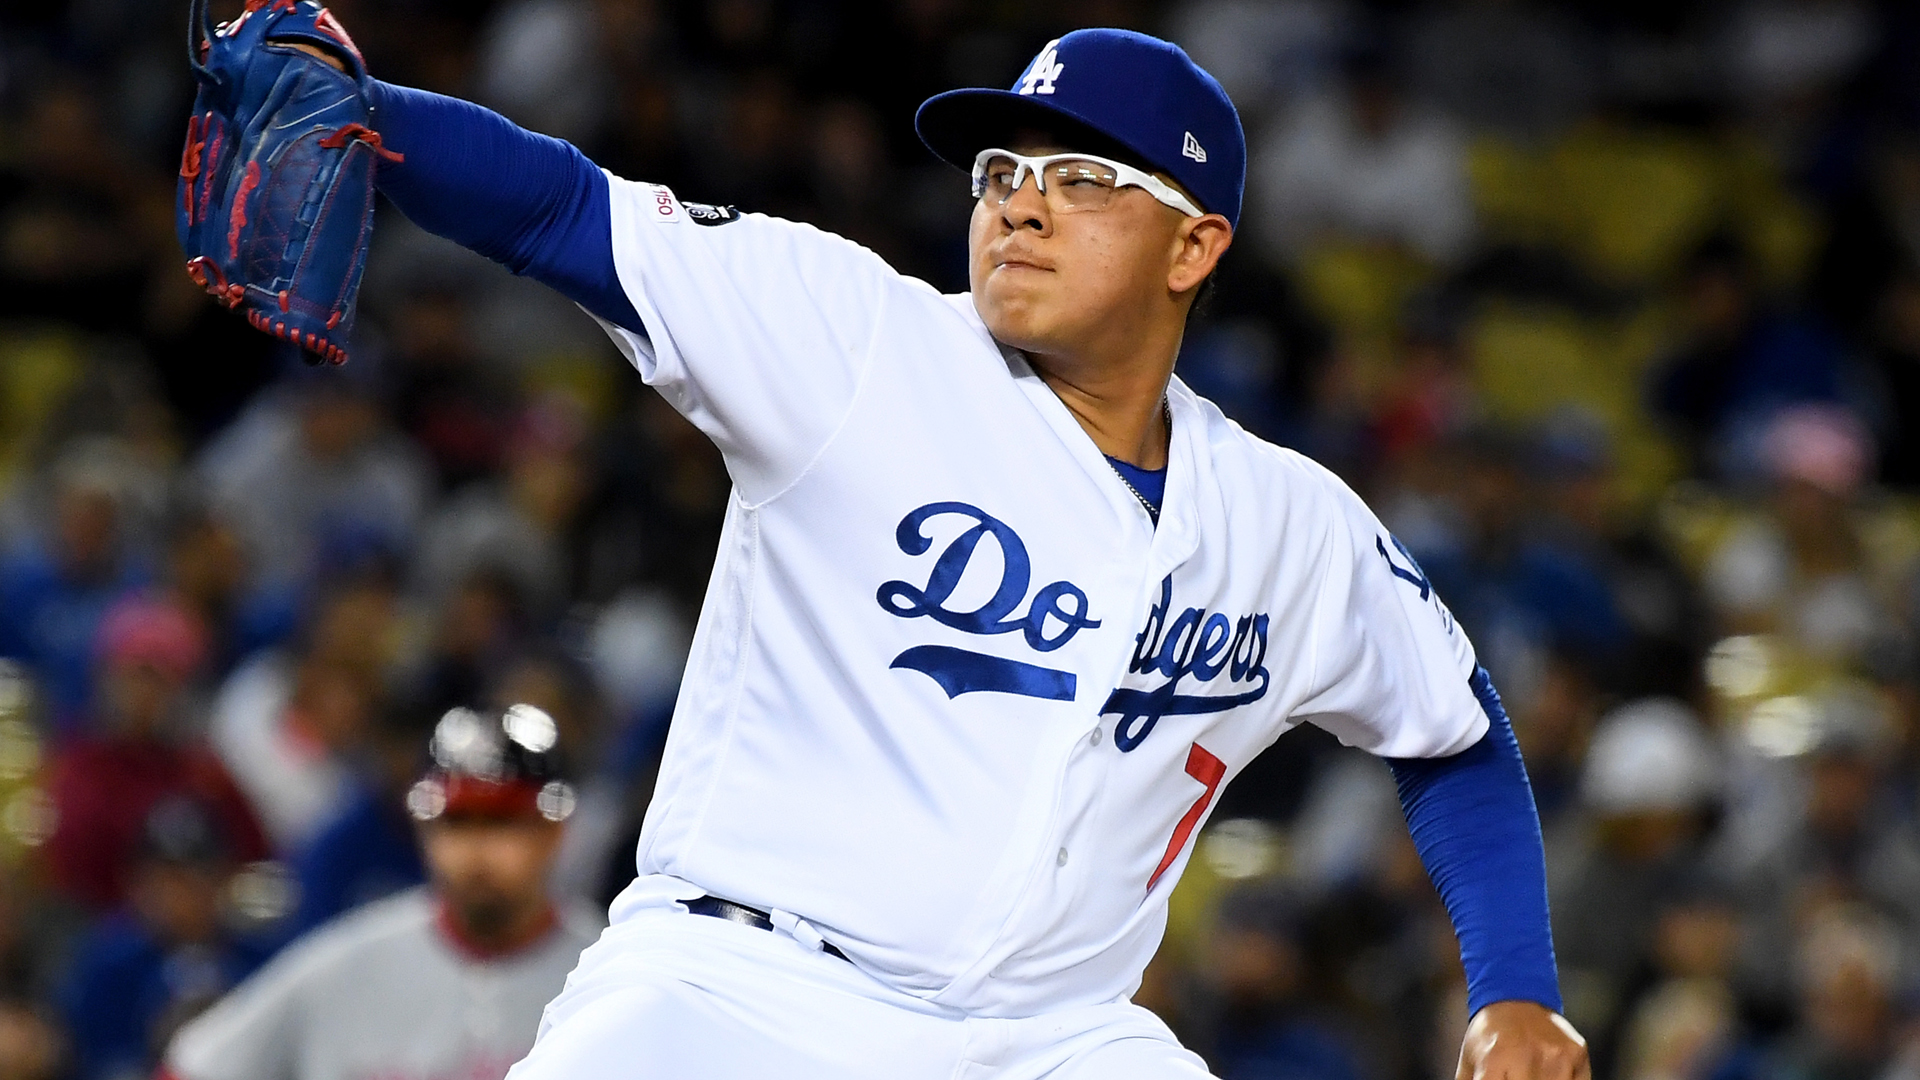 Julio Urias of the Los Angeles Dodgers is seen during a game at Dodger Stadium on May 10, 2019, in Los Angeles. (Credit: Jayne Kamin-Oncea/Getty Images)